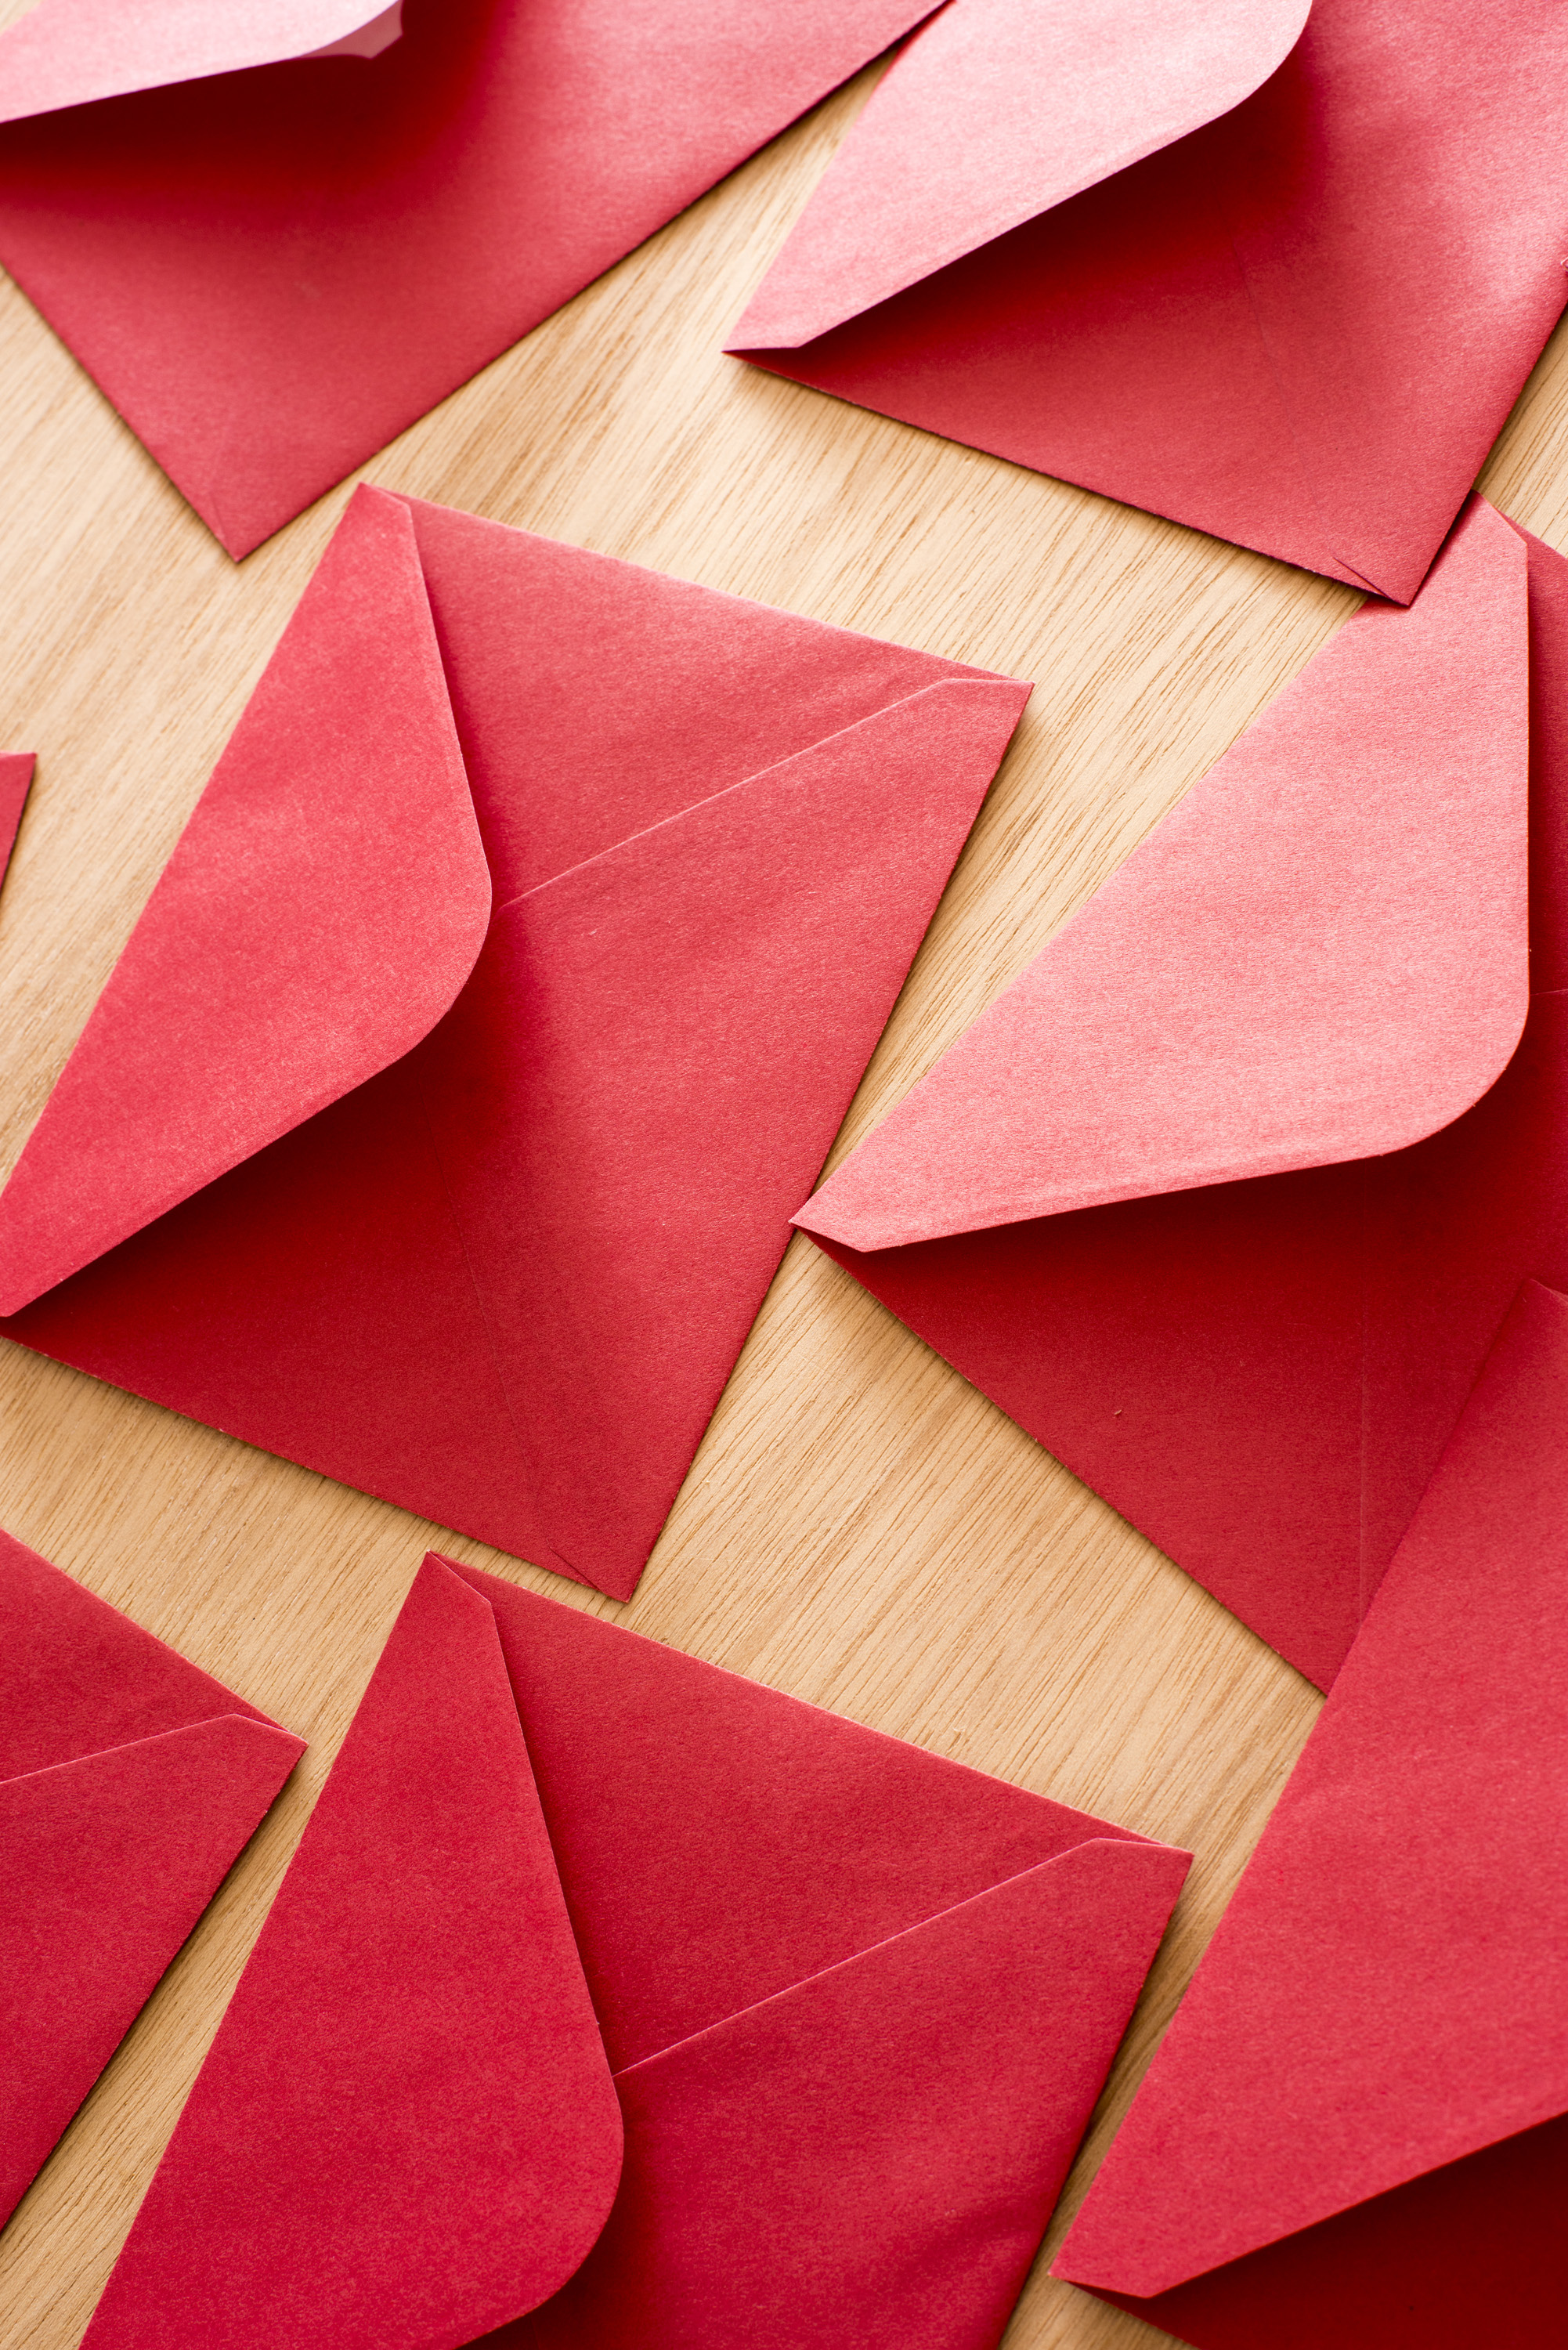 Festive red Christmas or Valentines envelopes lying face down on a wooden table with open flaps in a full frame background